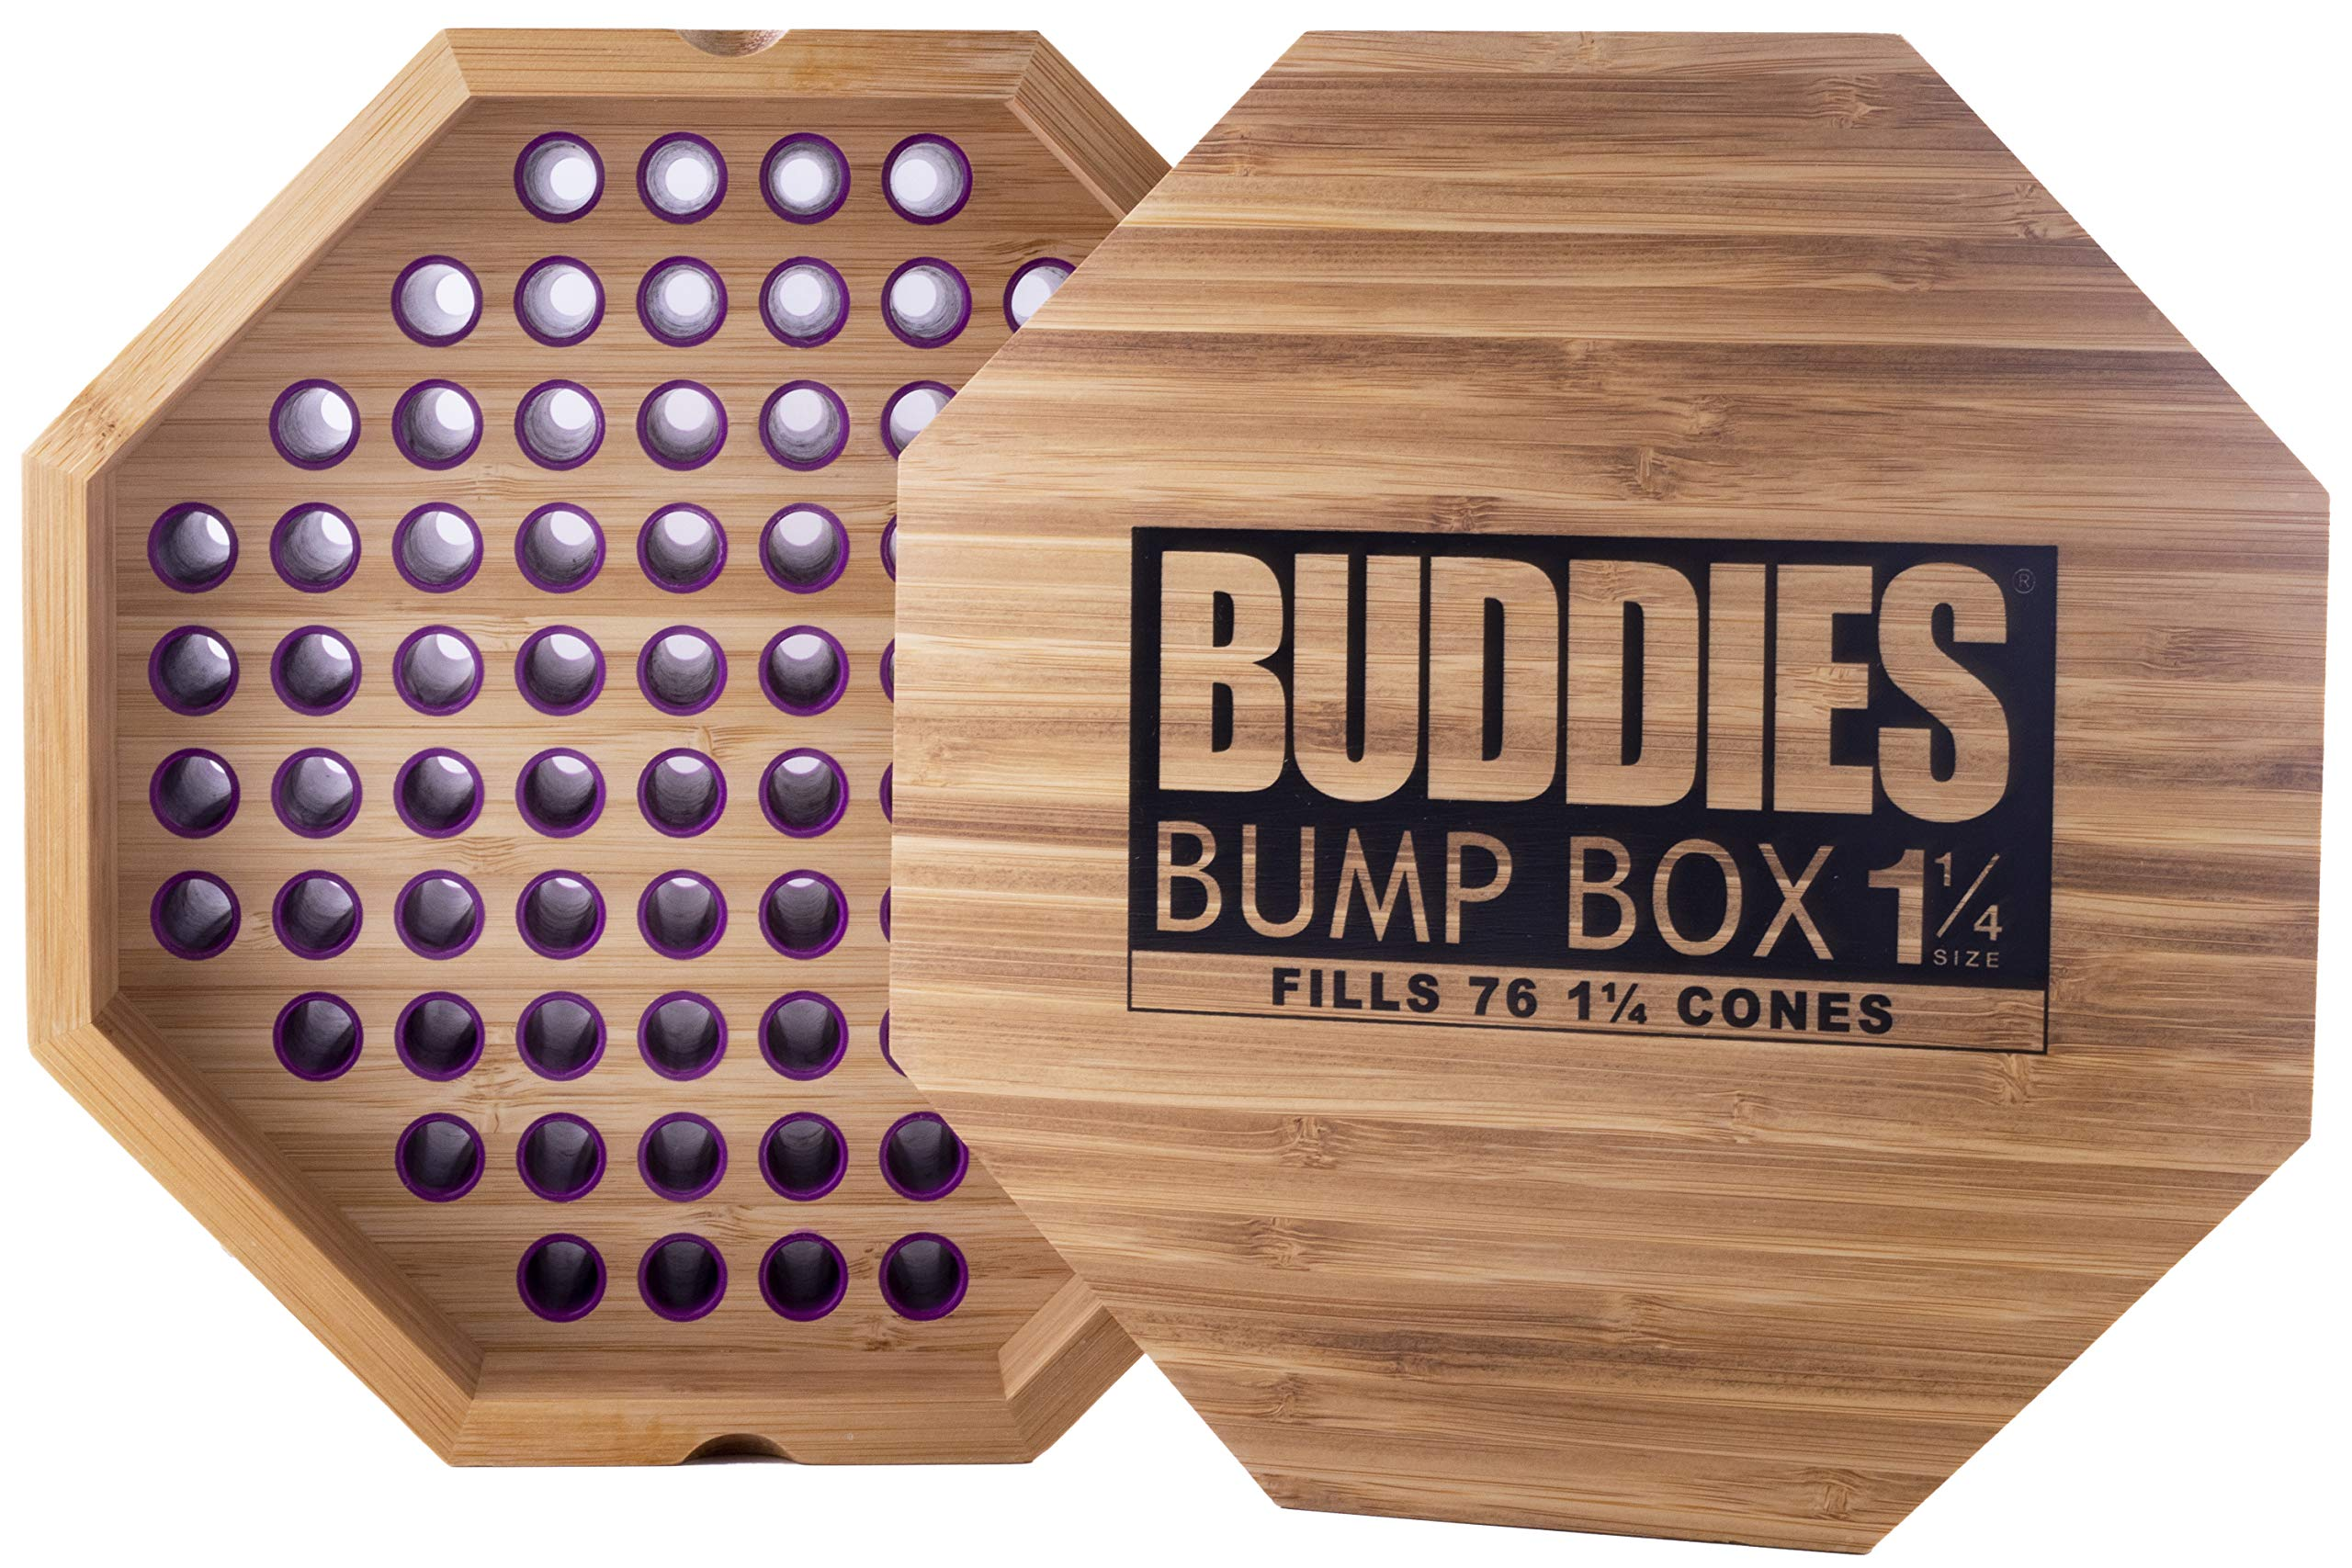 Buddies Bump Box Filler for 1 1/4 Size Cones - Fills 76 Cones Simultaneously by Buddies (Image #1)